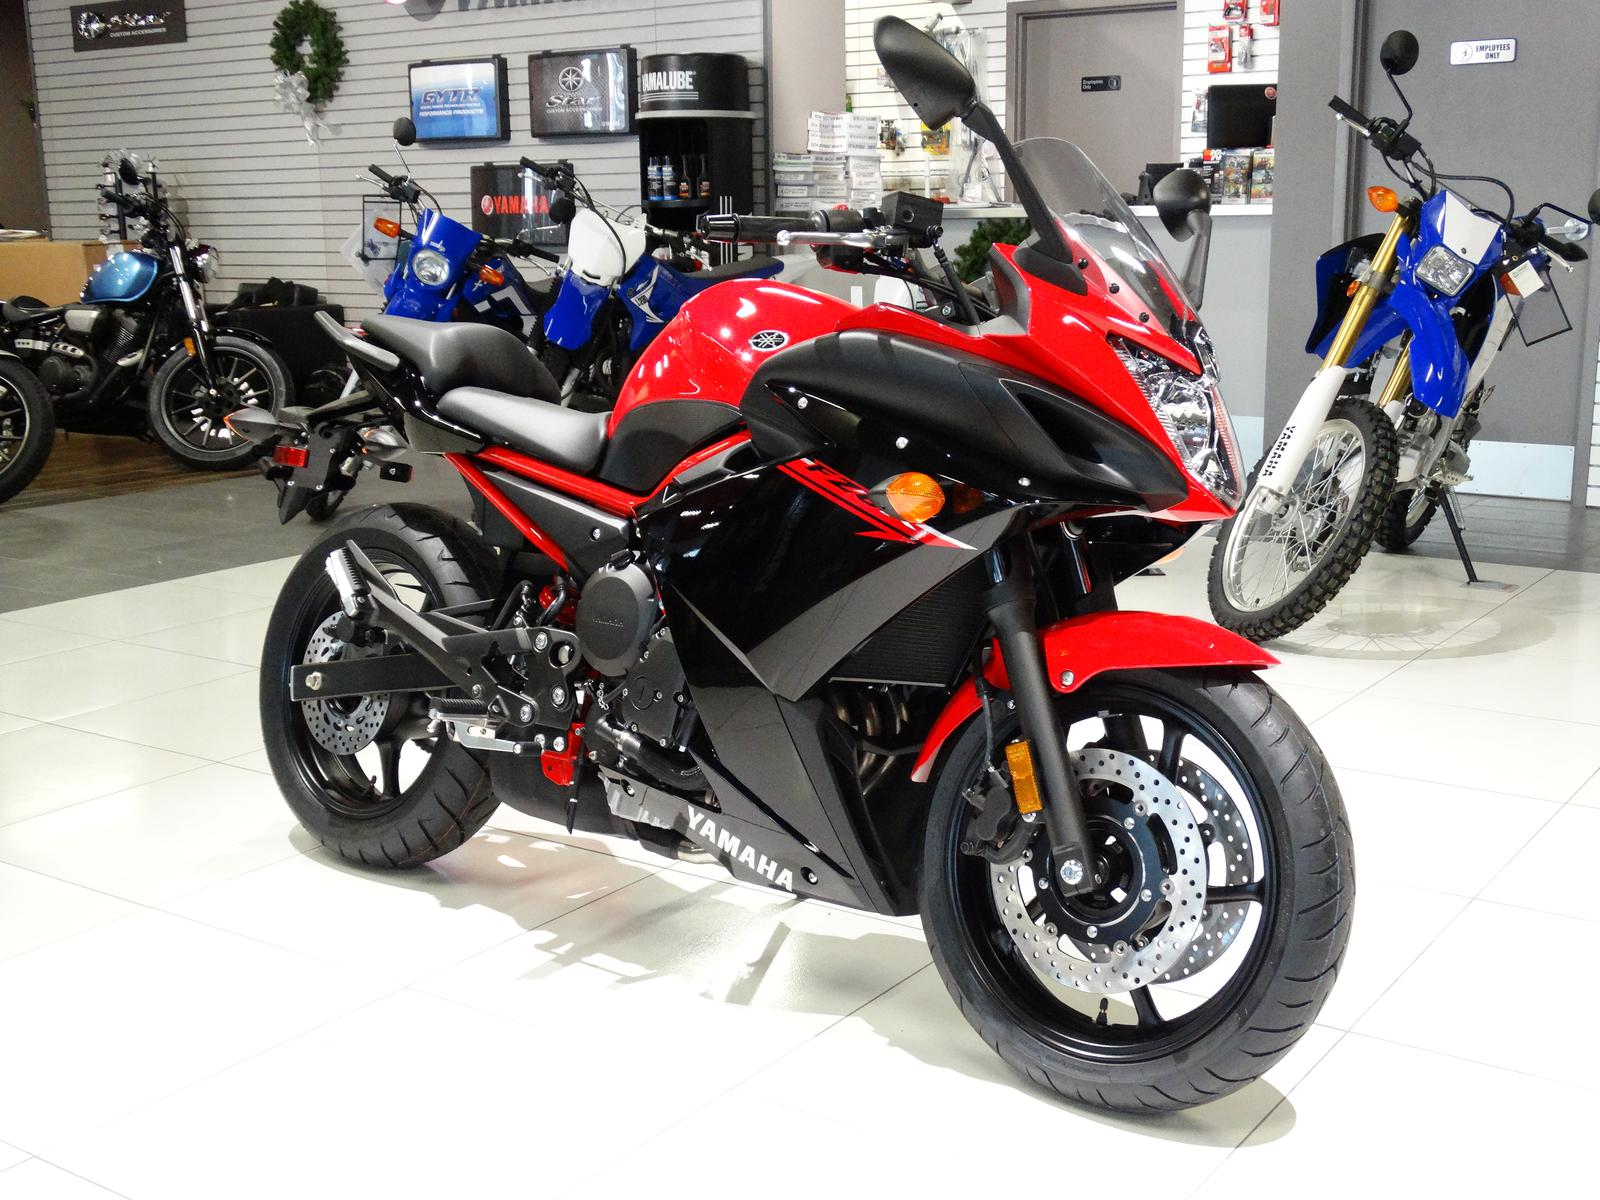 Motorcycles For Sale Chicago >> 2015 Yamaha Fz6r Motorcycle From Chicago Il Today Sale